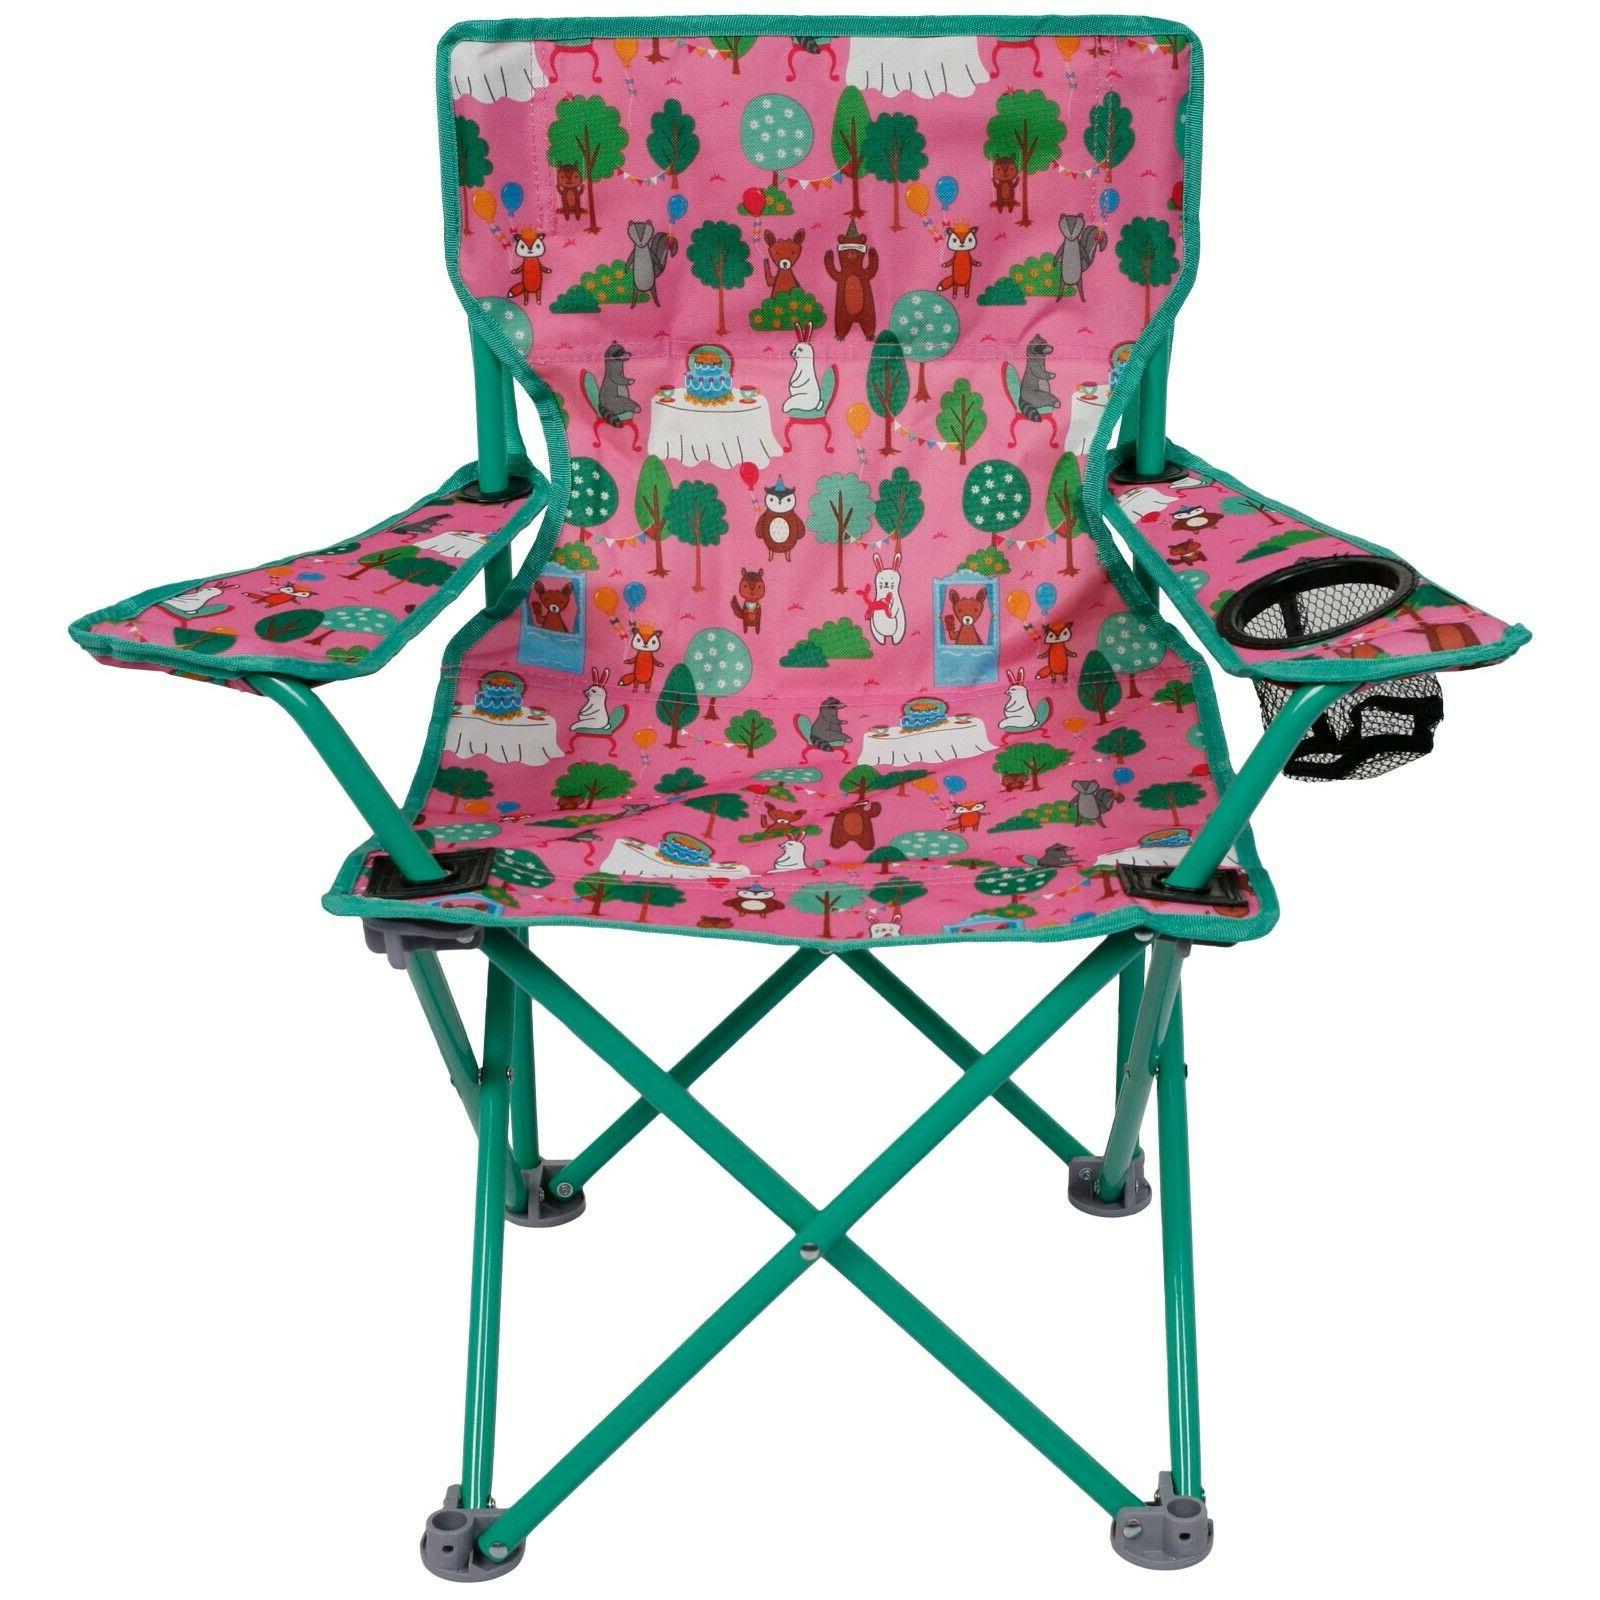 OUTDOOR CAMPING PRINTED FOLDING CHAIR Kids Portable Seat Stu